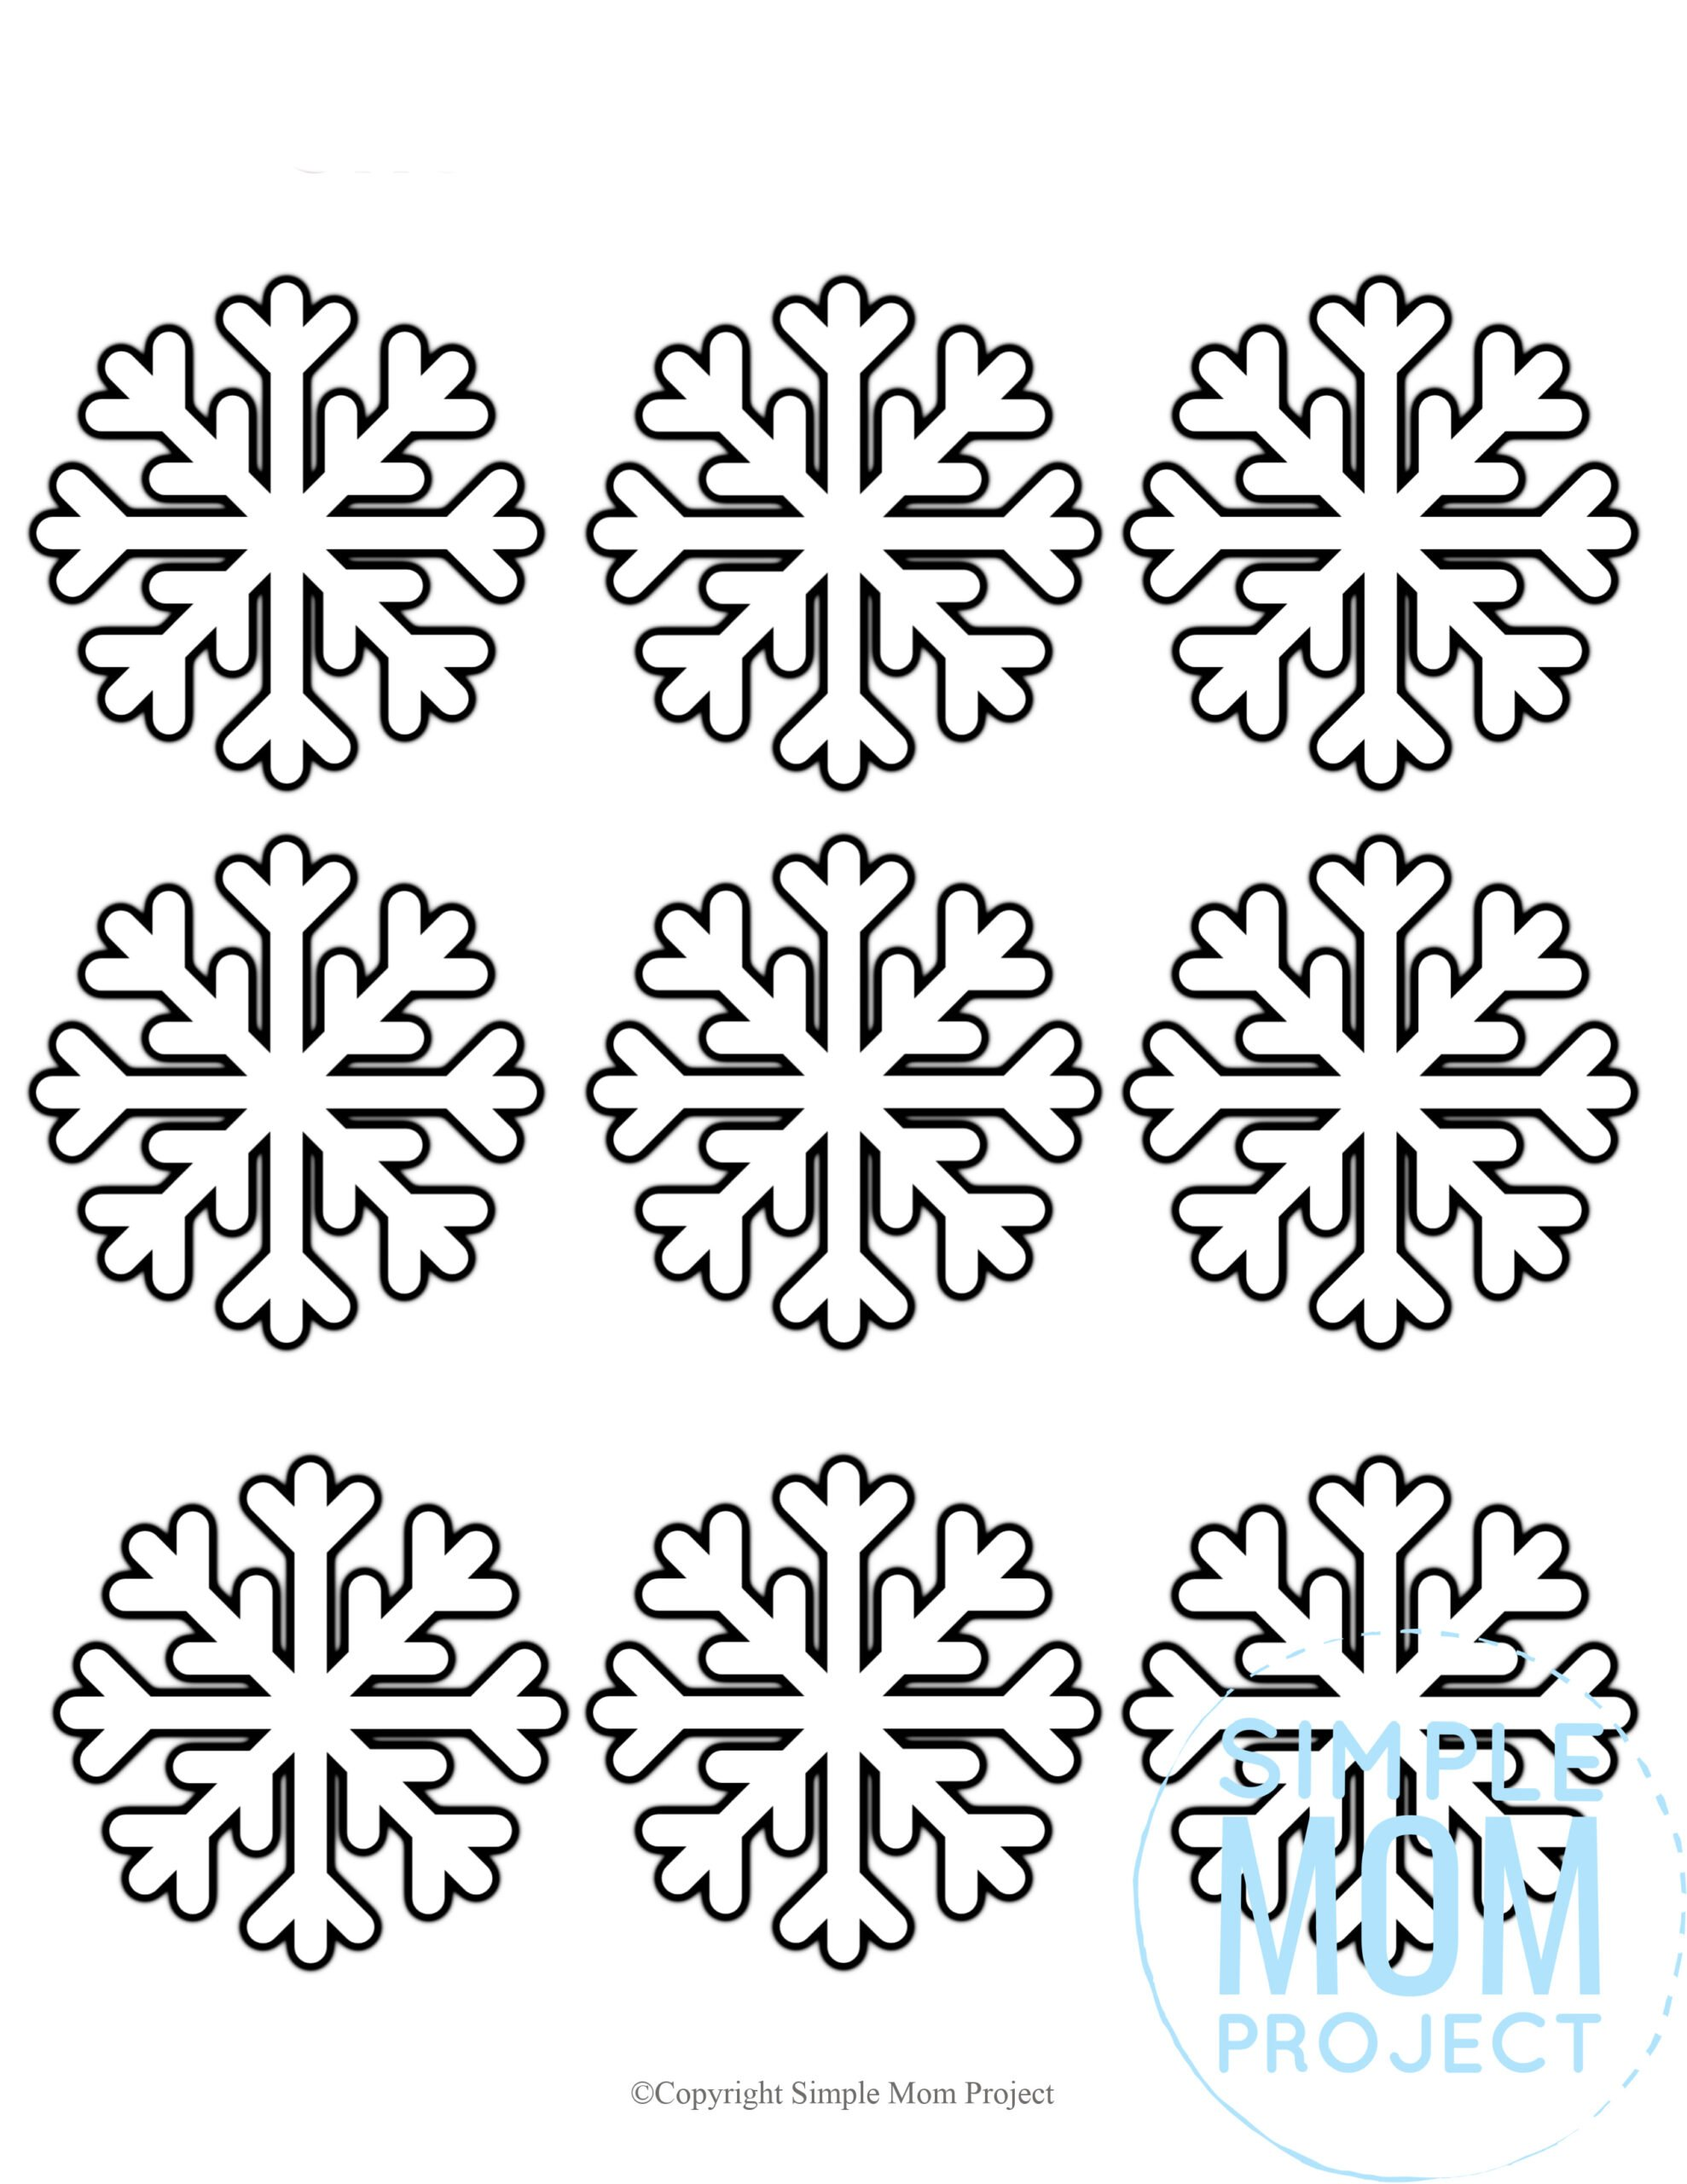 Free Printable Small Snowflake template, snowflake pattern, snowflake stencil, snowflake outline for kids winter crafts